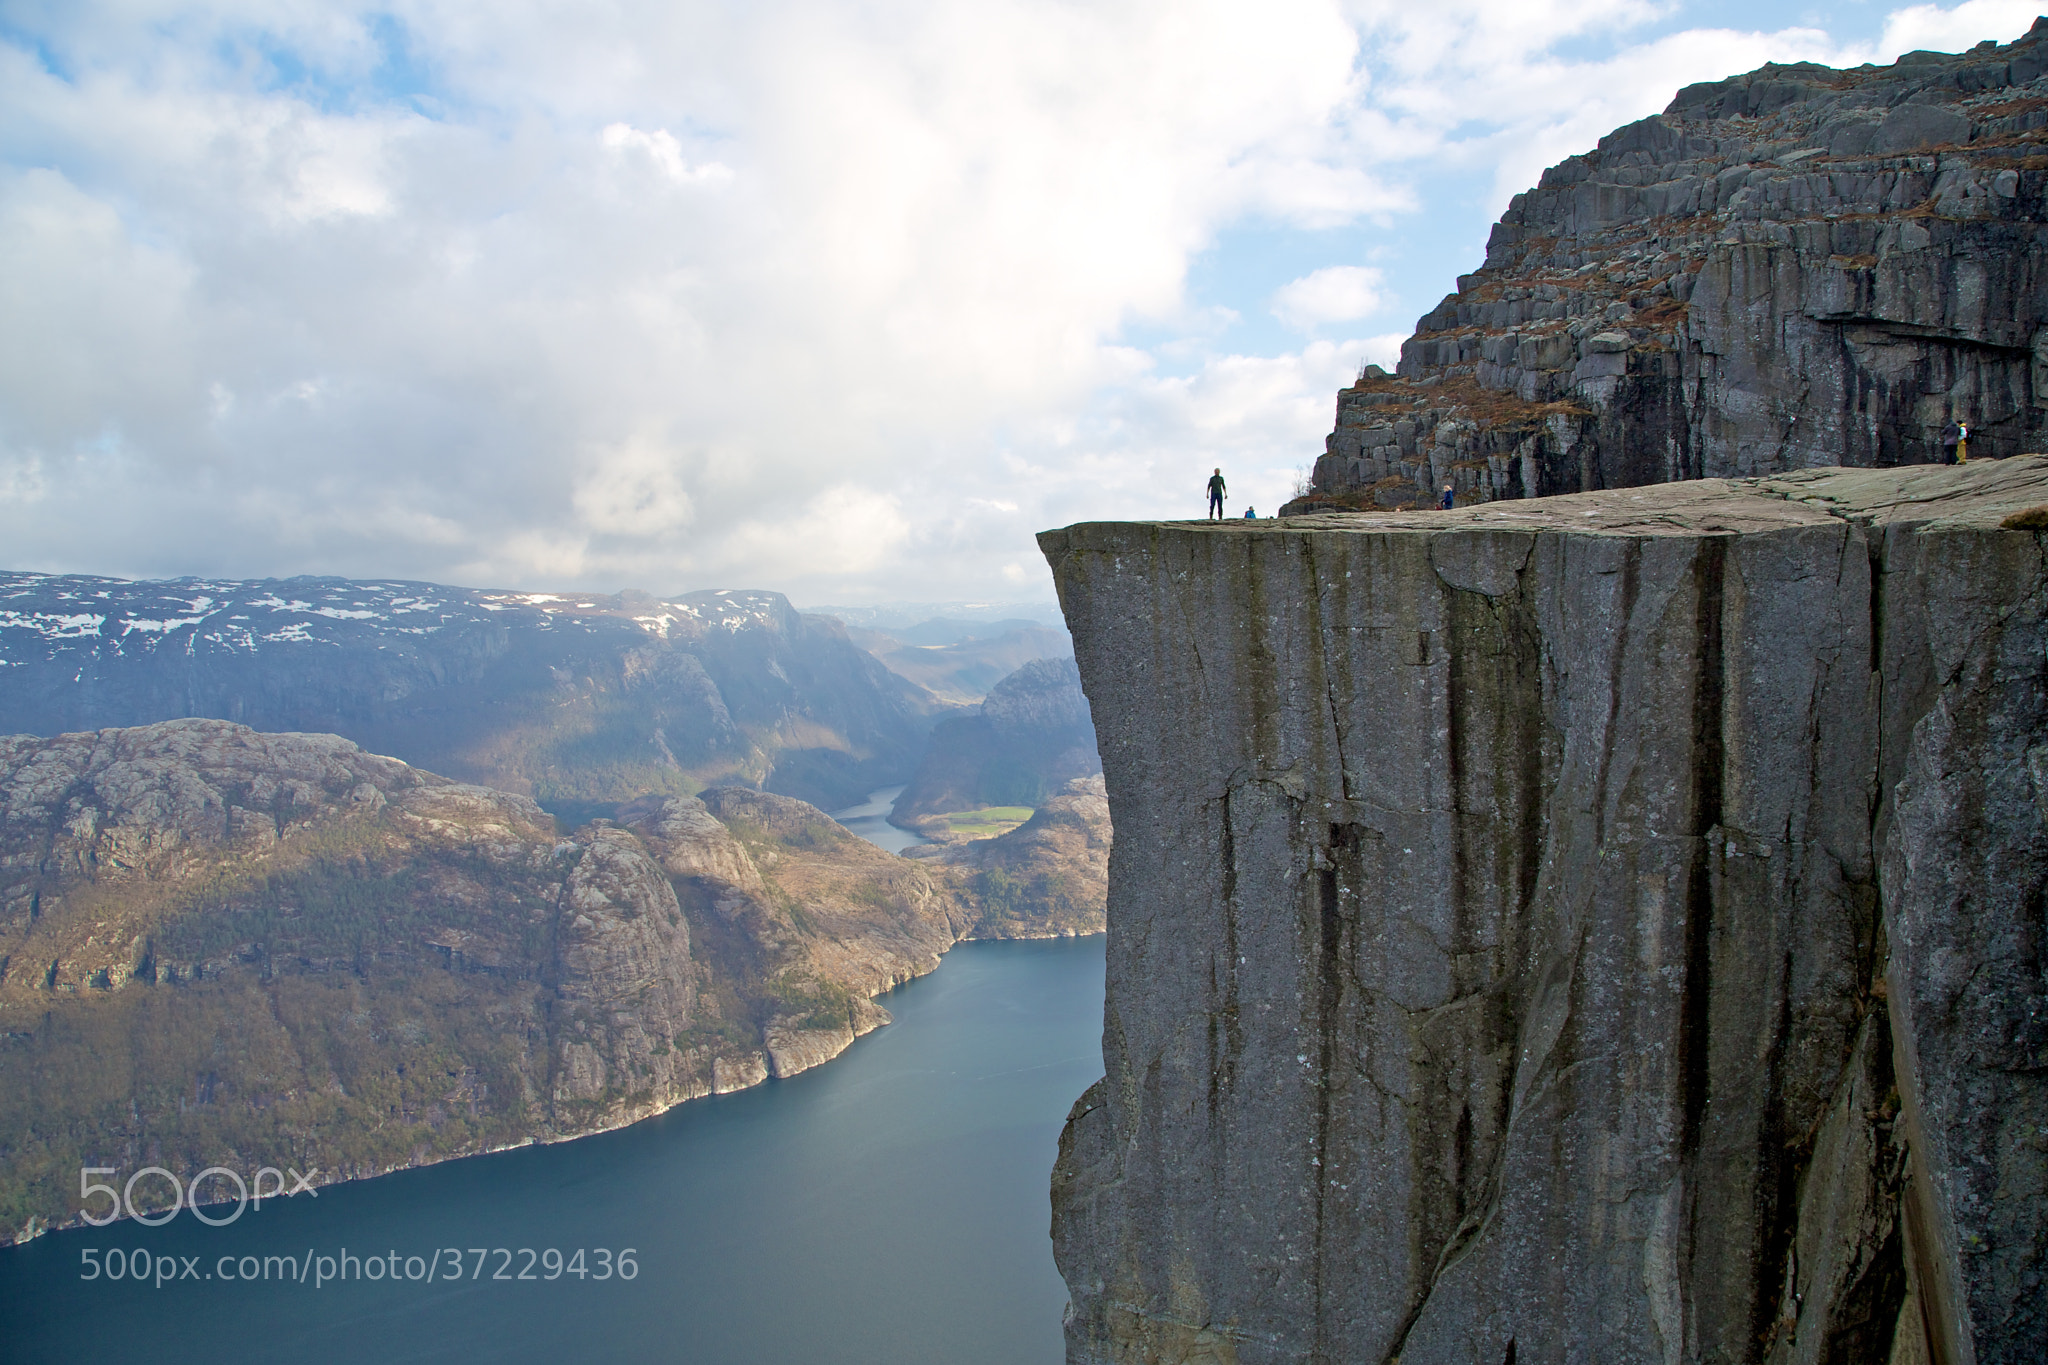 Photograph Preikestolen, Norway by Europe Trotter on 500px